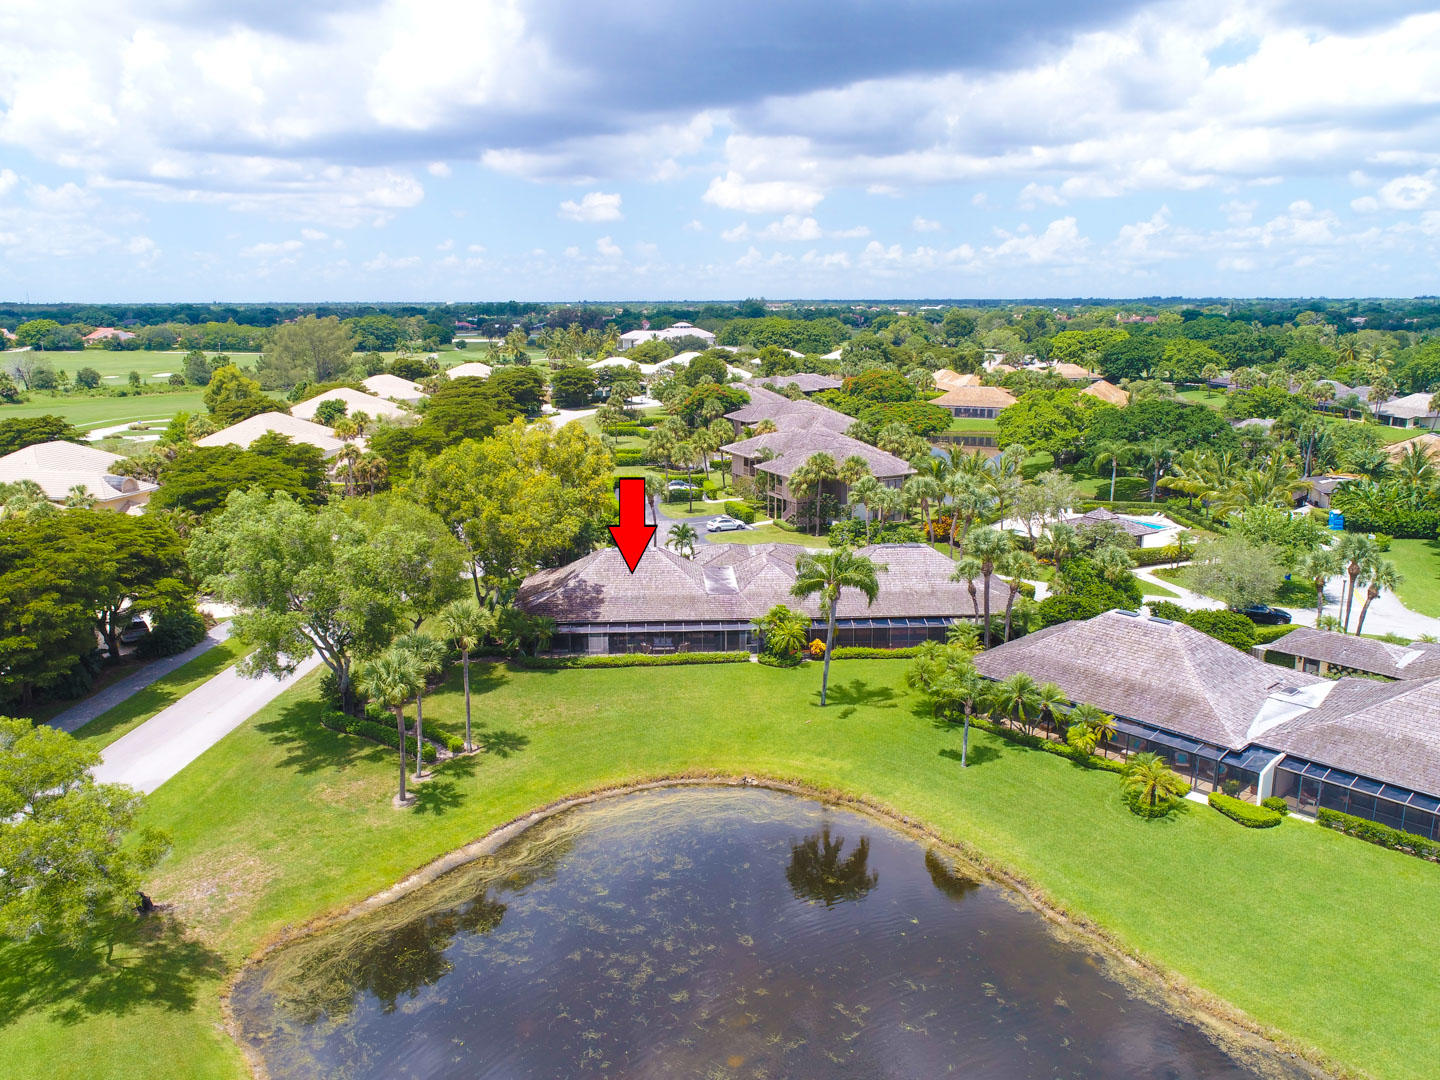 11740 Marblestone Court, Wellington, Florida 33414, 4 Bedrooms Bedrooms, ,4 BathroomsBathrooms,Villa,For Sale,Palm Beach Polo,Marblestone,1,RX-10360685